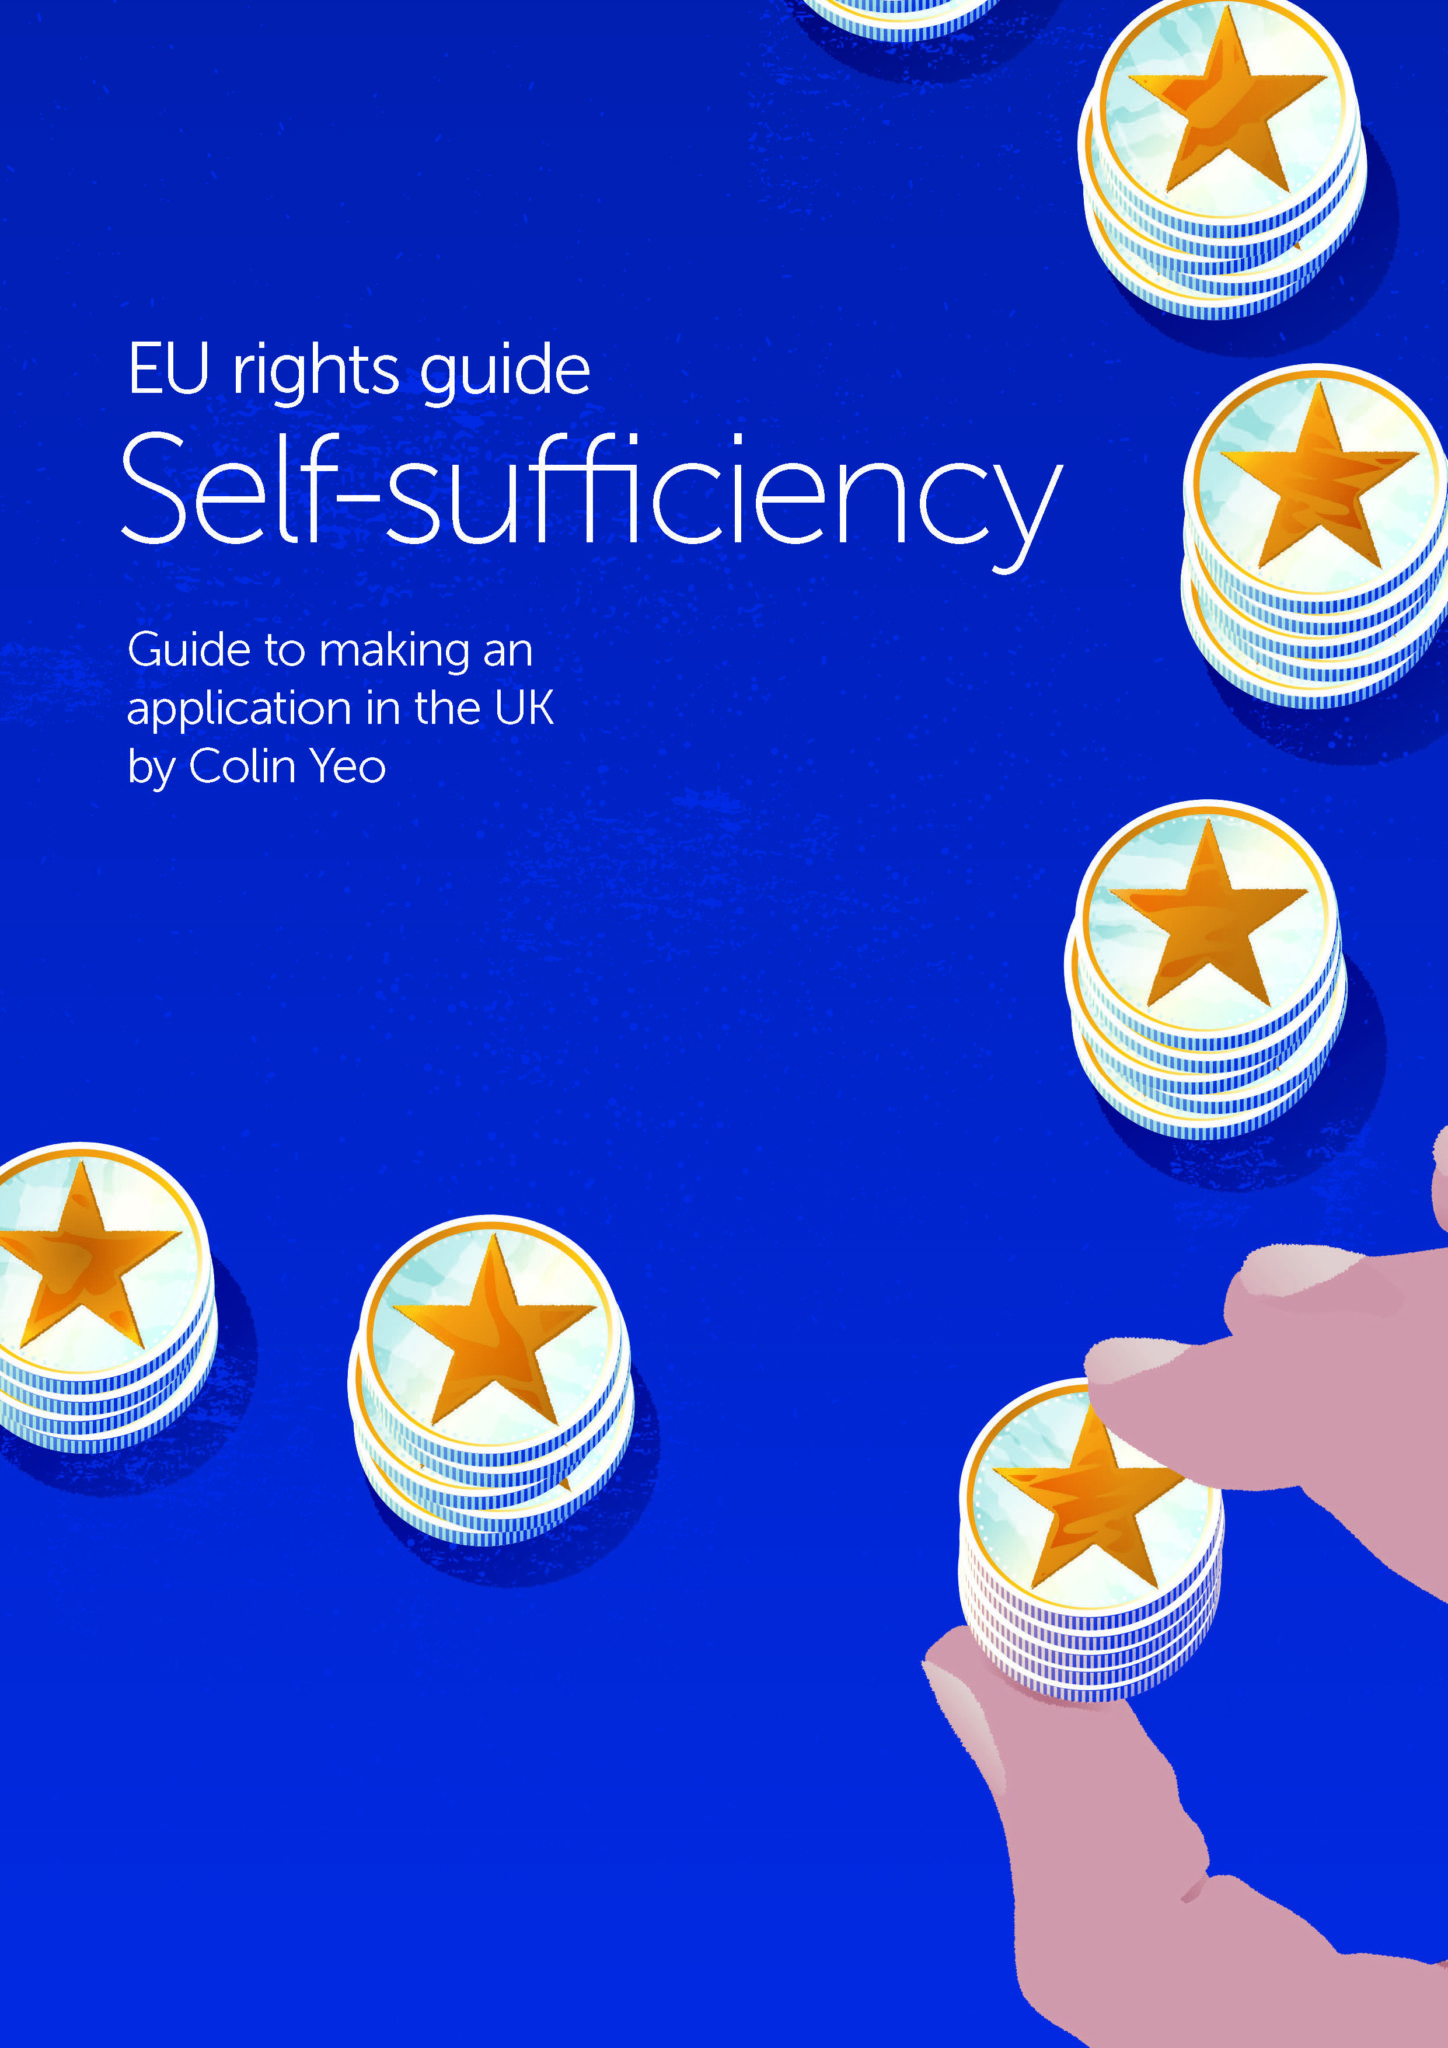 EU rights guide – Self-sufficiency